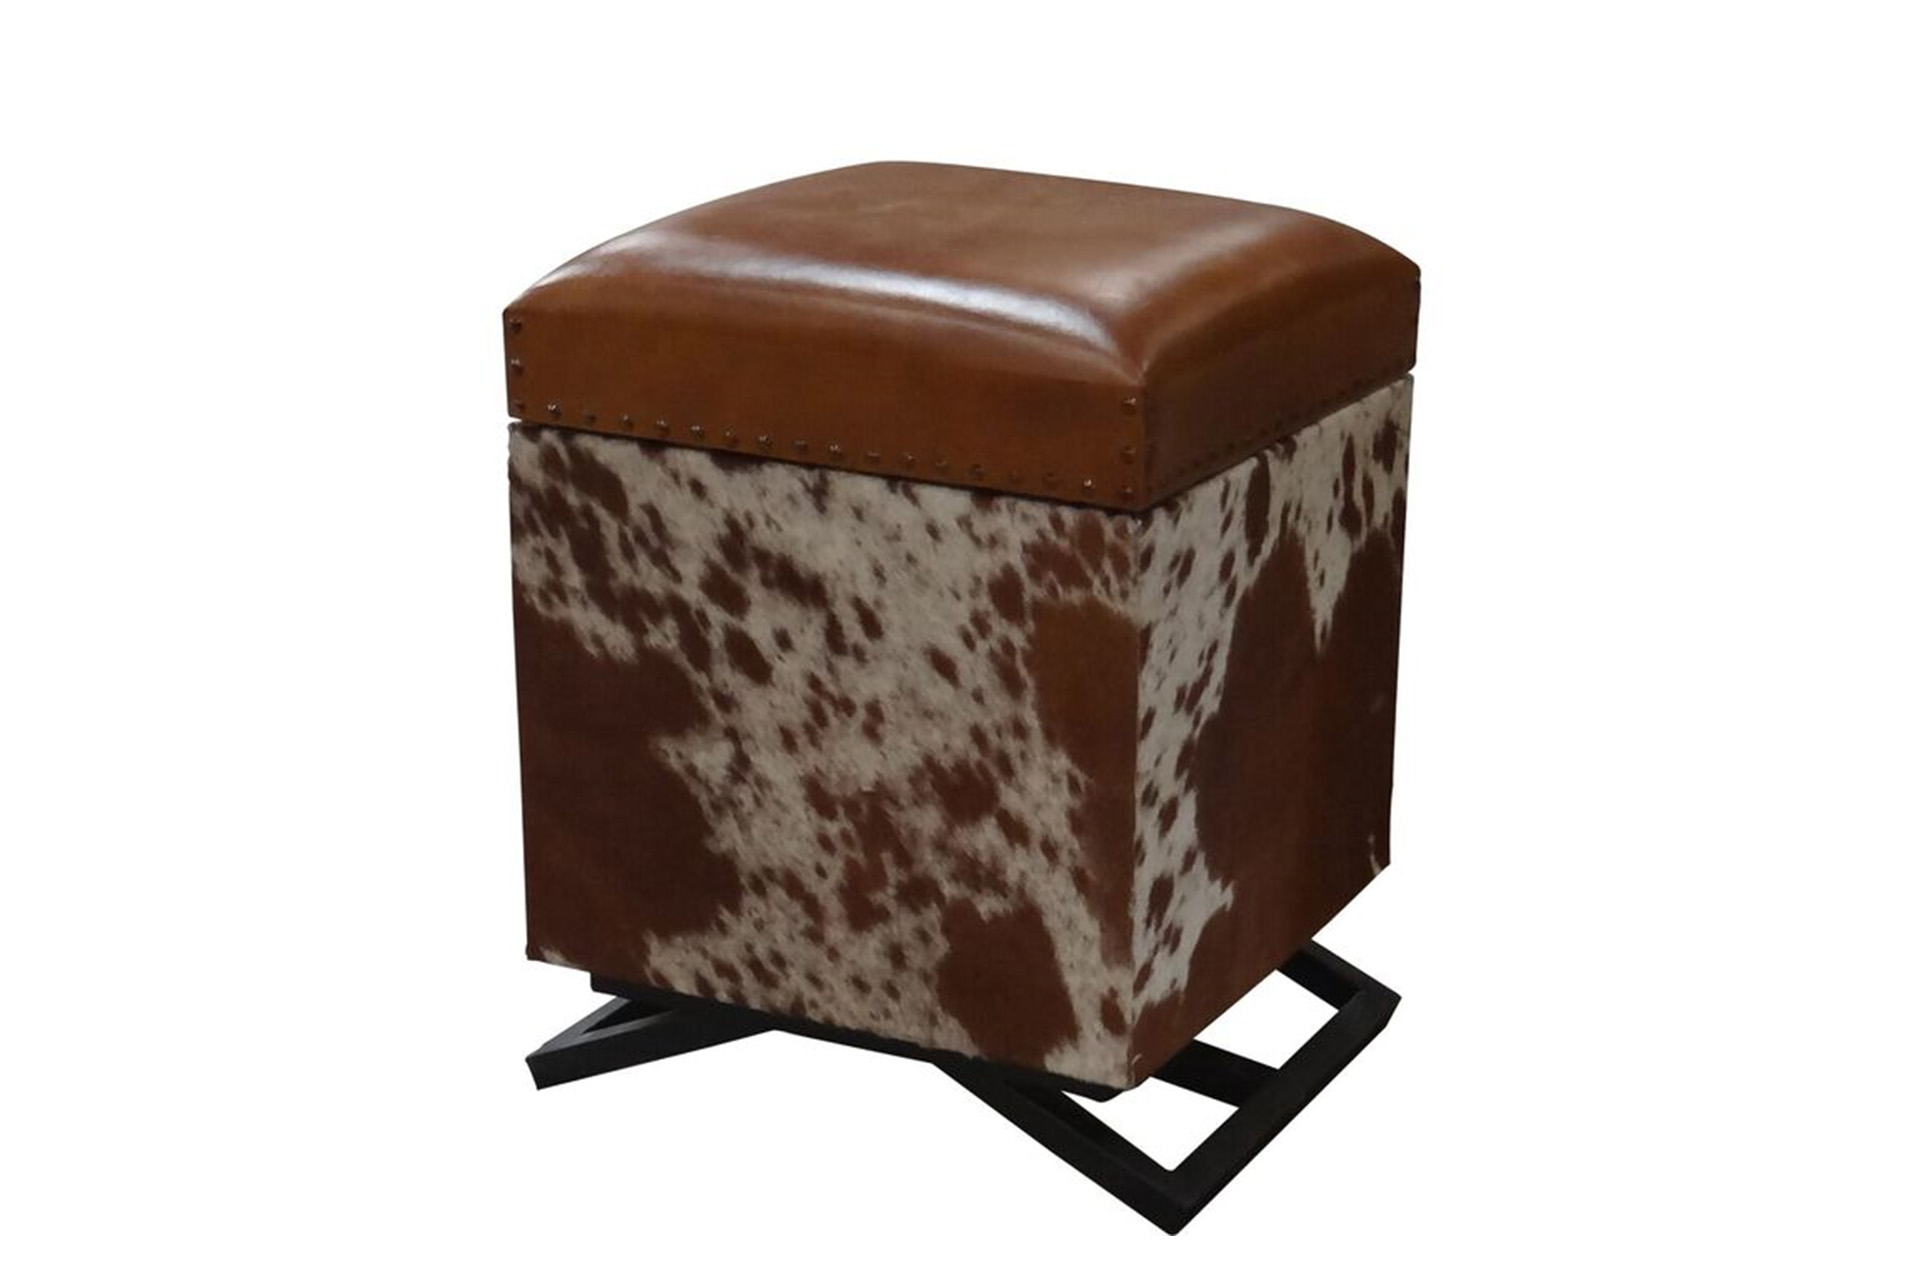 Square Cowhide Storage Ottoman (Qty: 1) Has Been Successfully Added To Your  Cart.